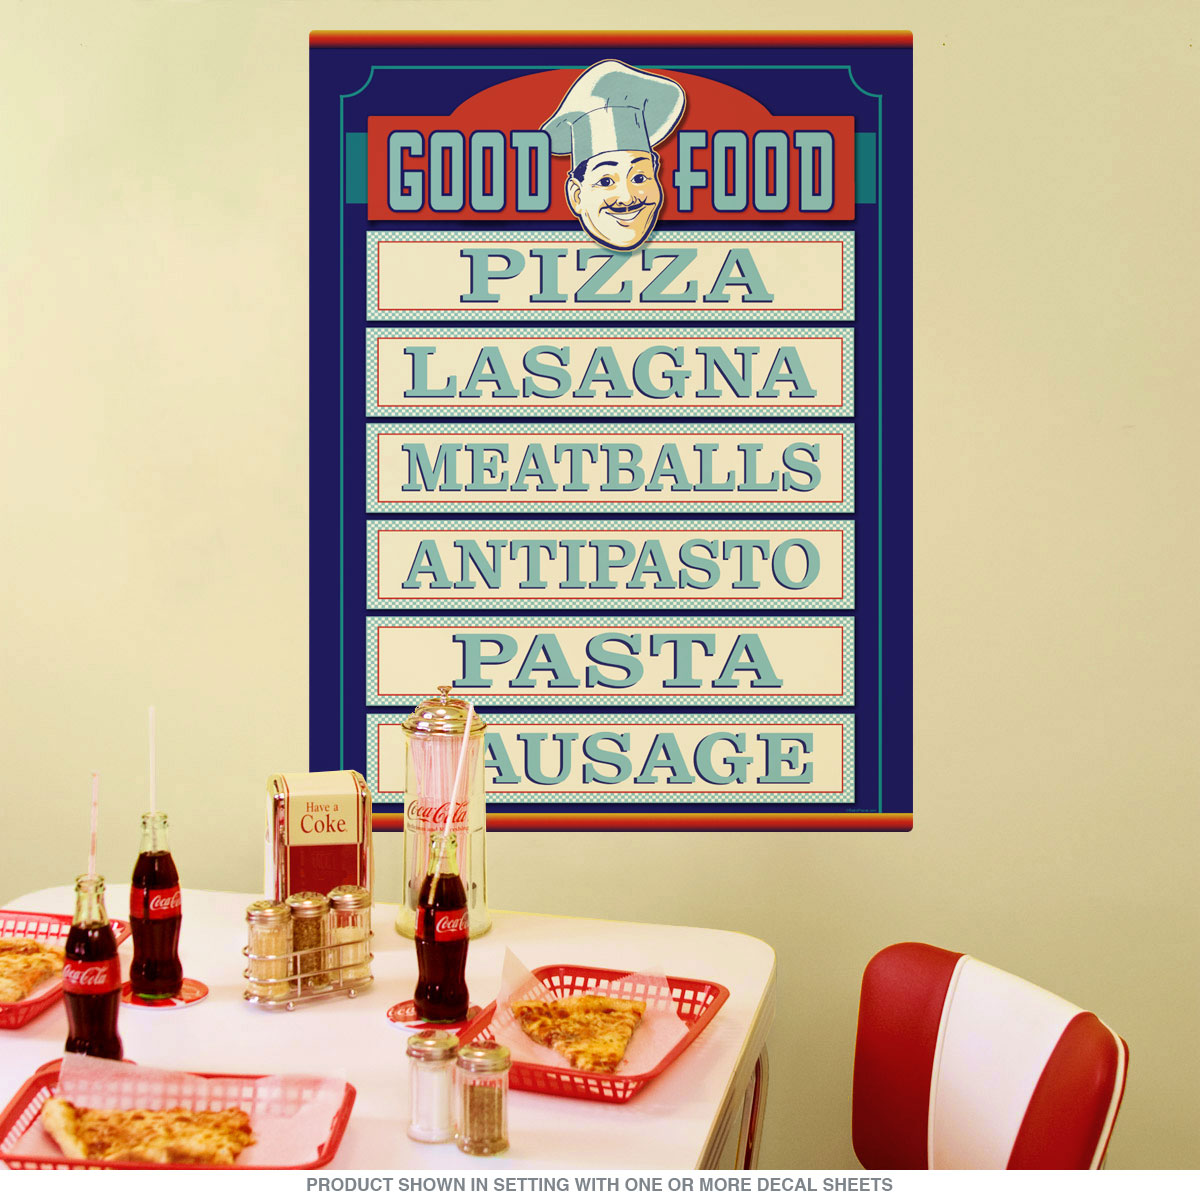 Good Food Italian Chef Menu Wall Decal | Restaurant Decor ...